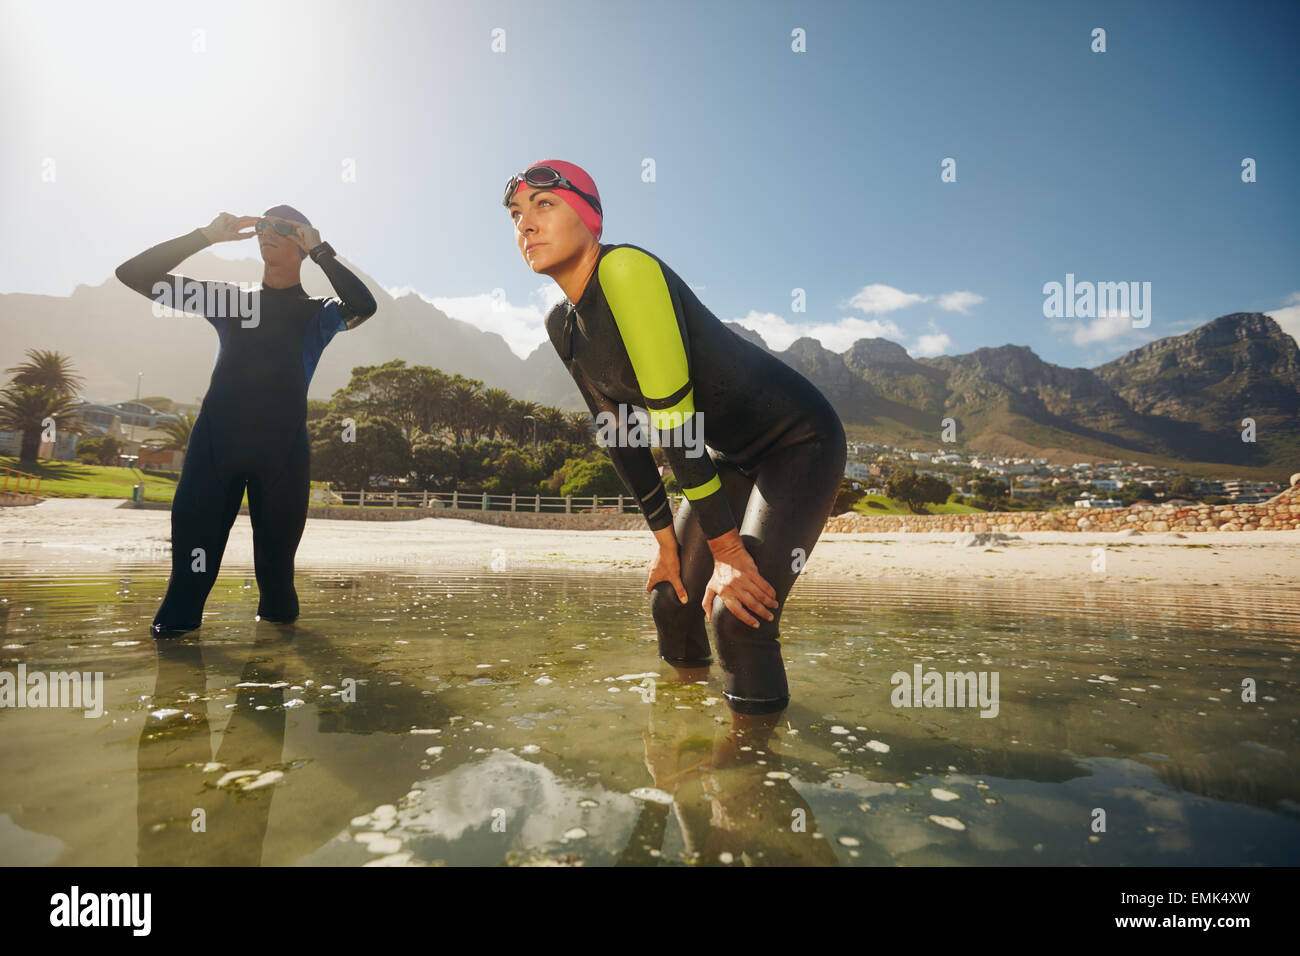 Determined sports persons standing in water getting ready for competition. Triathletes in wet suits preparing for - Stock Image